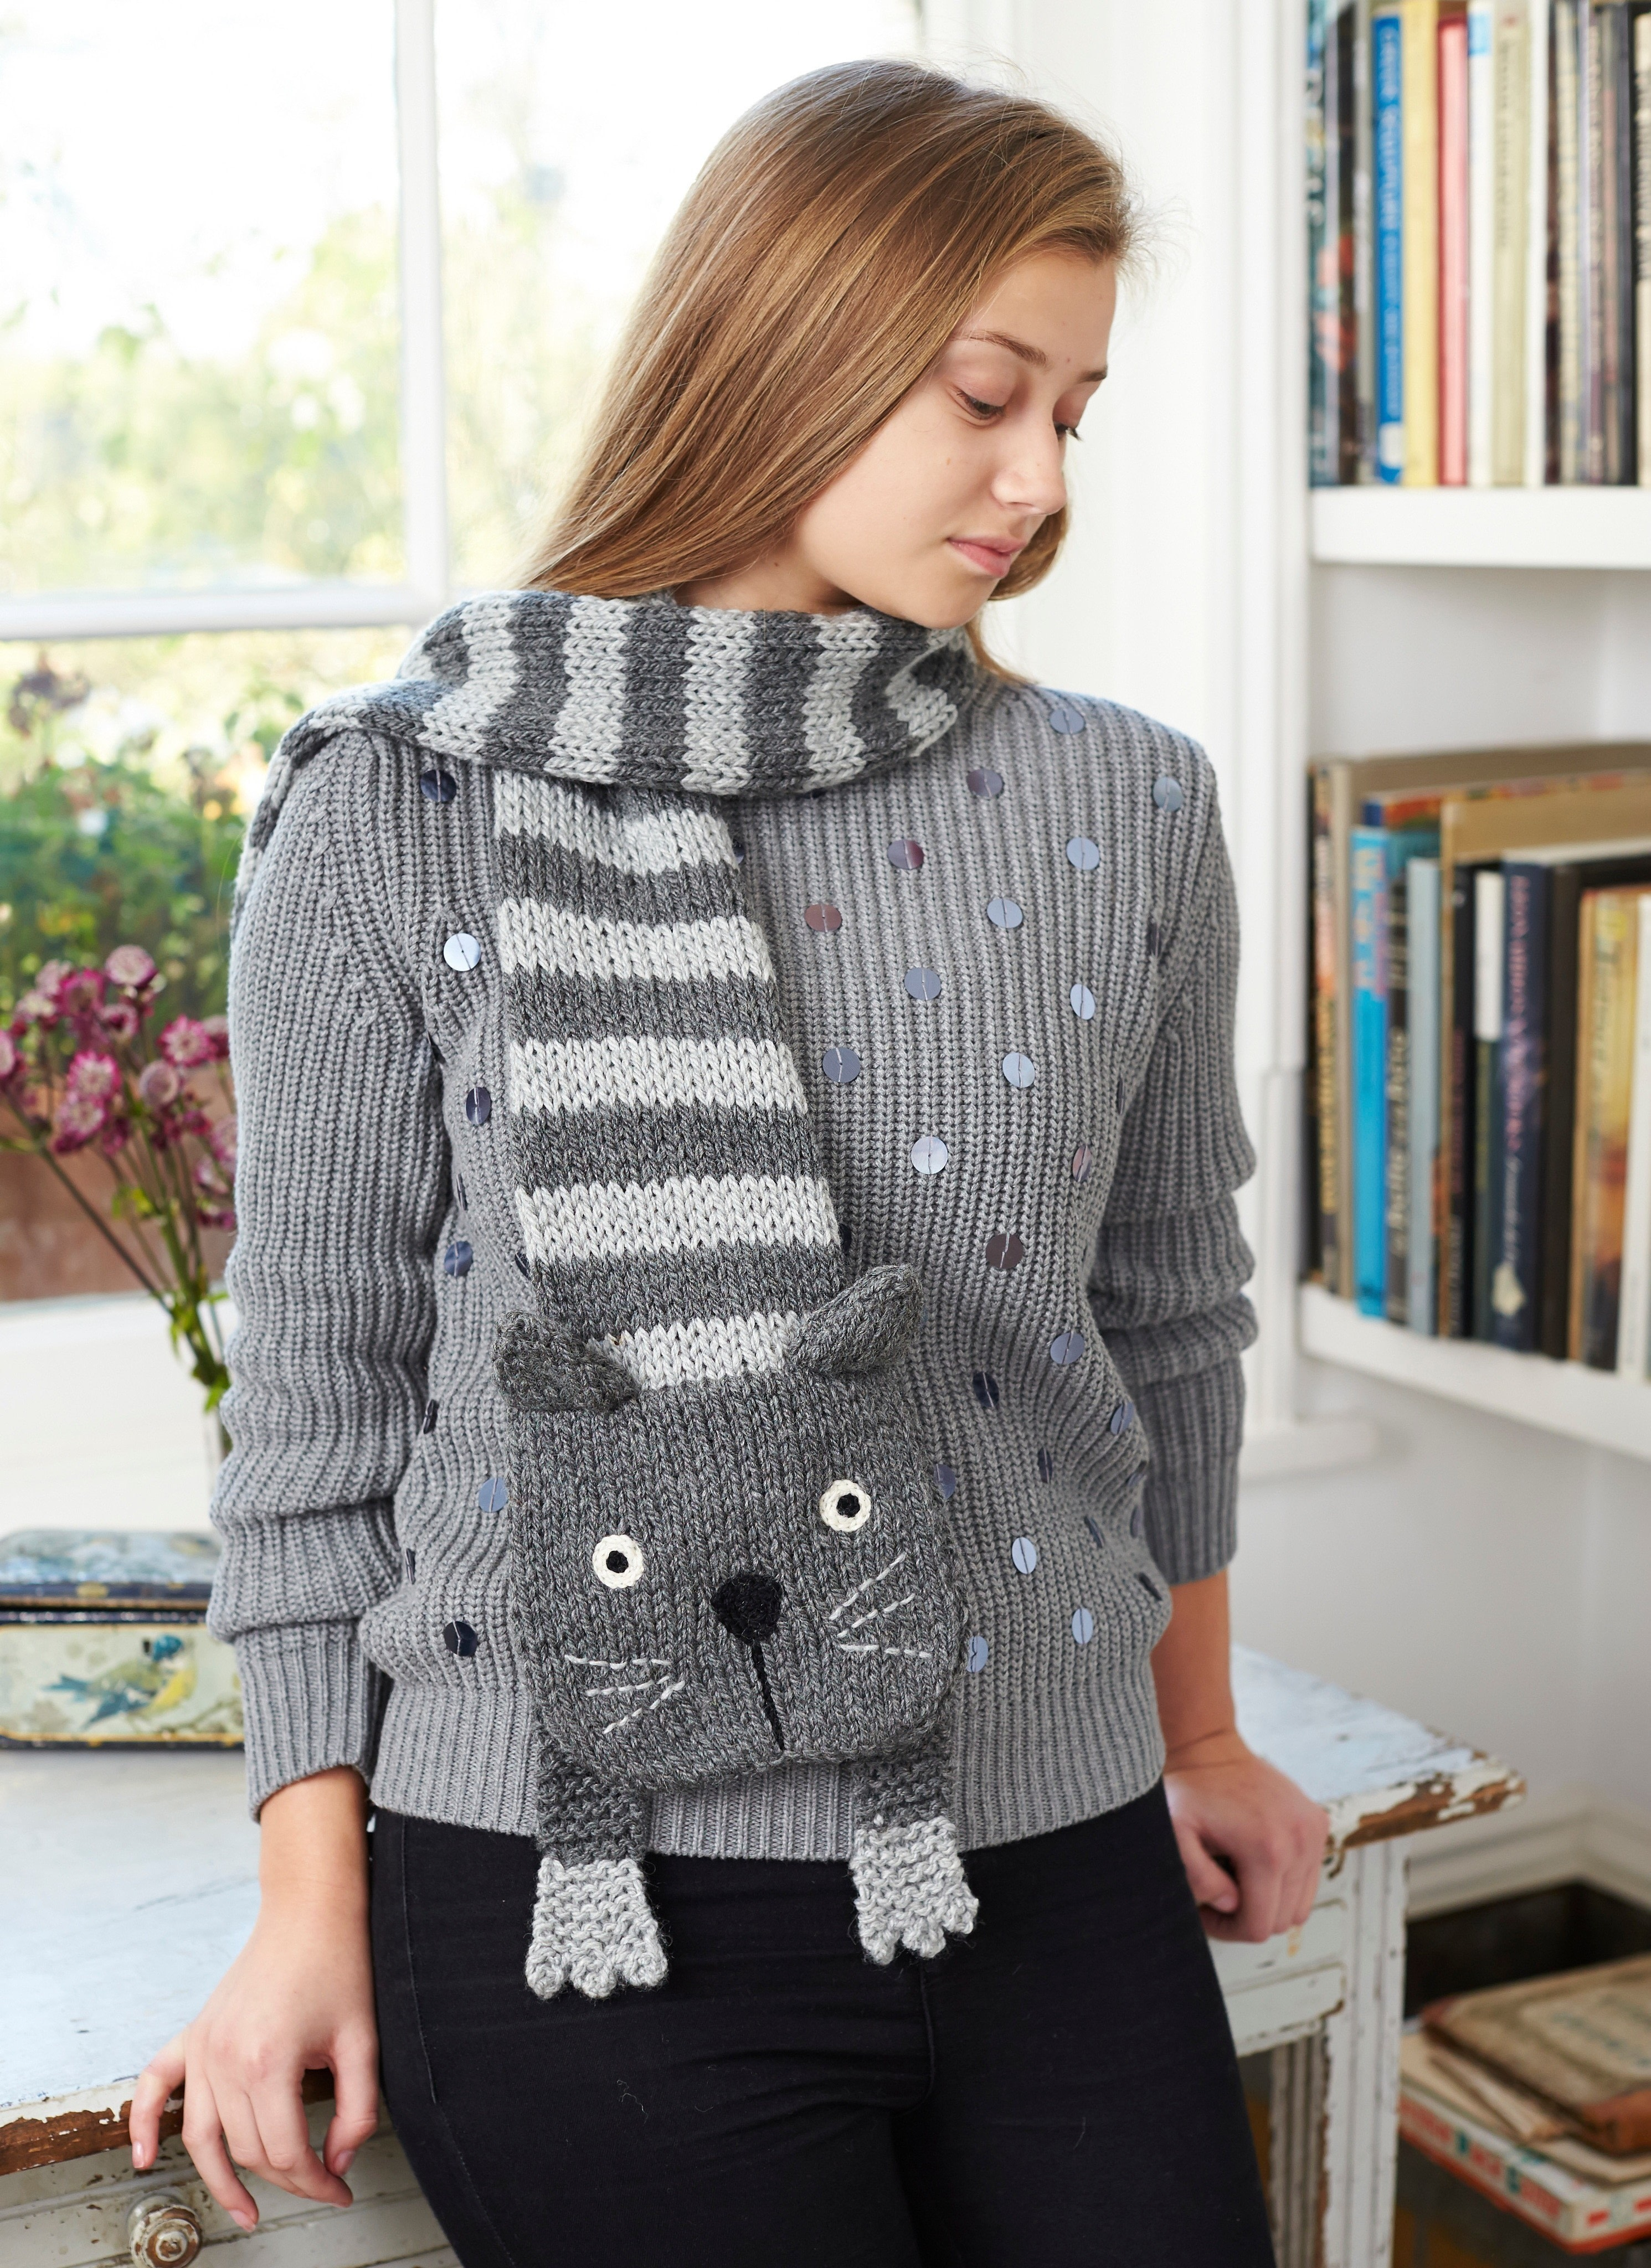 Tabby Cat Scarf · Extract from Knitted Animal Scarves, Mitts, and ...